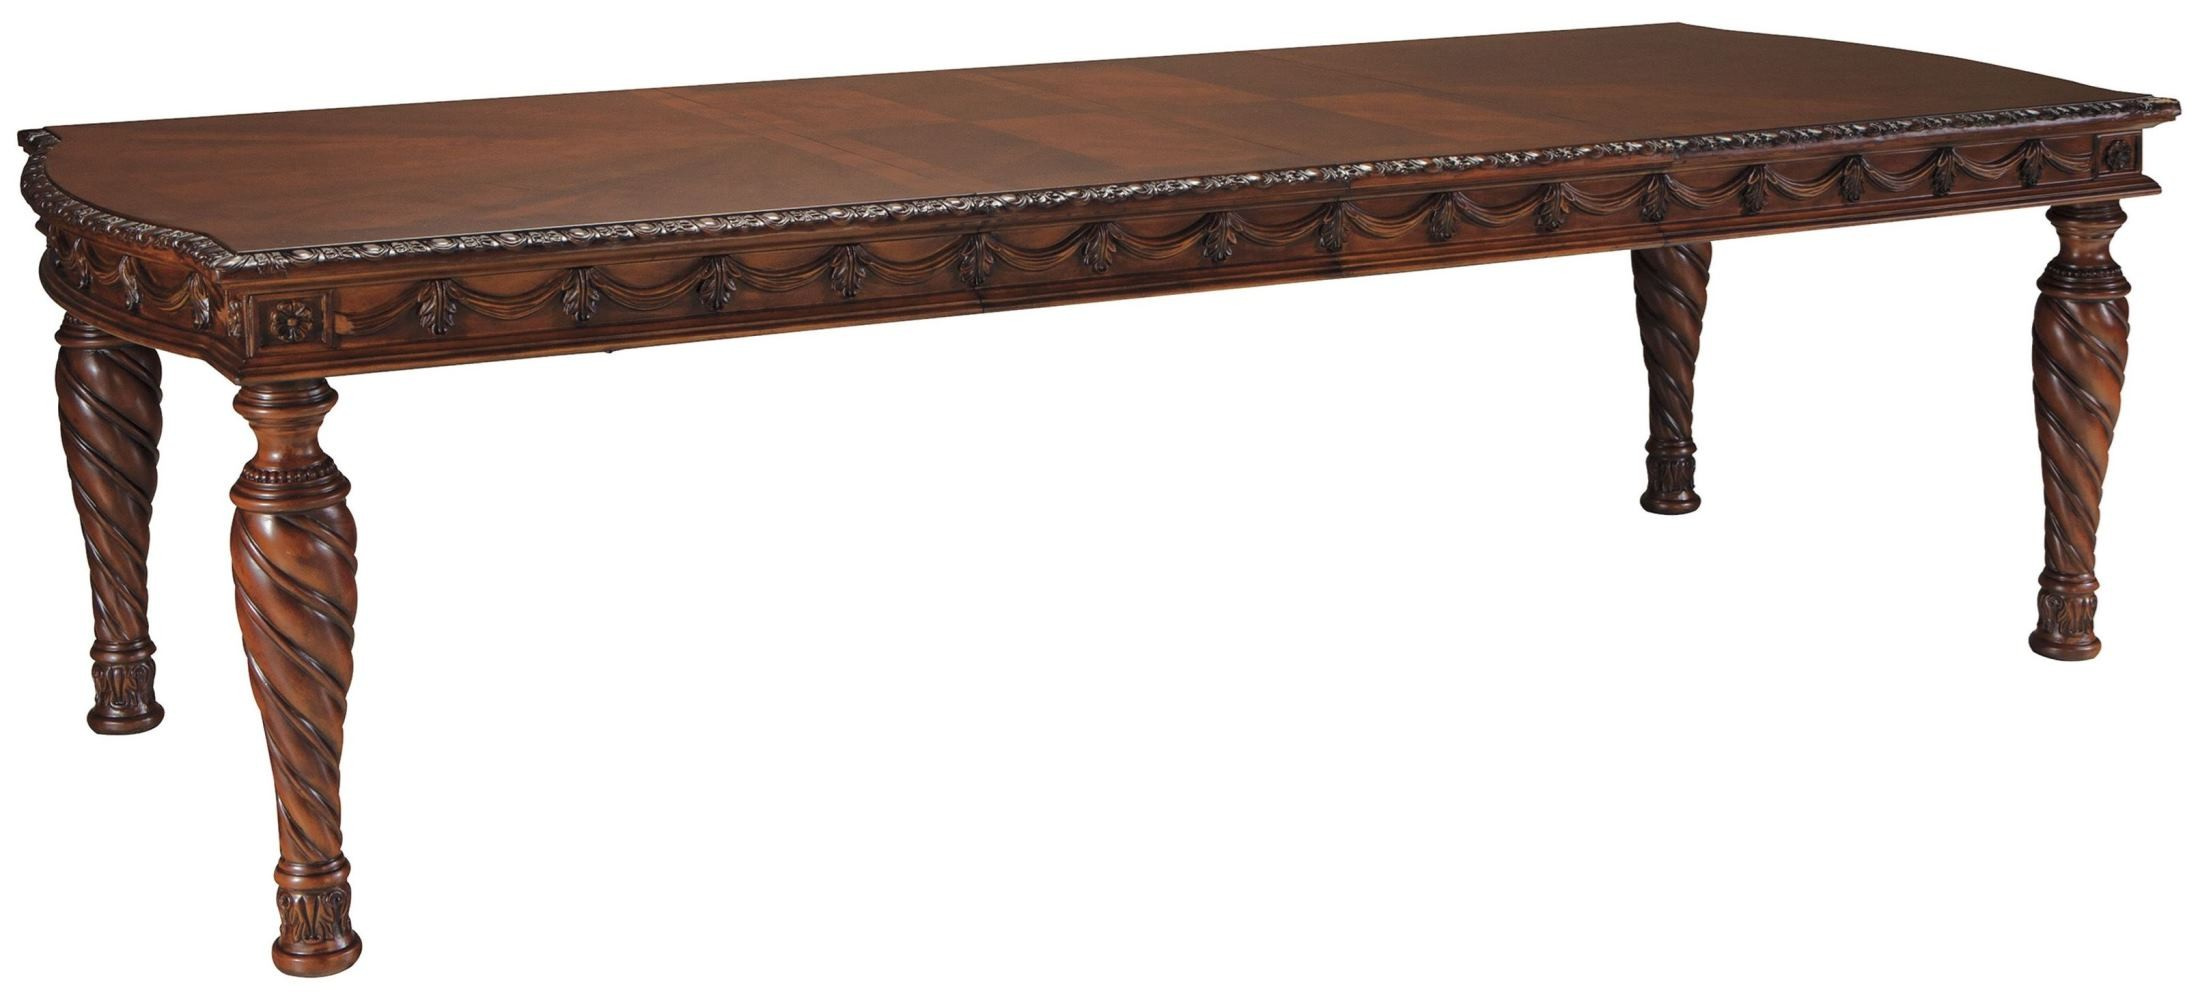 D553-35 North Shore Leg Table